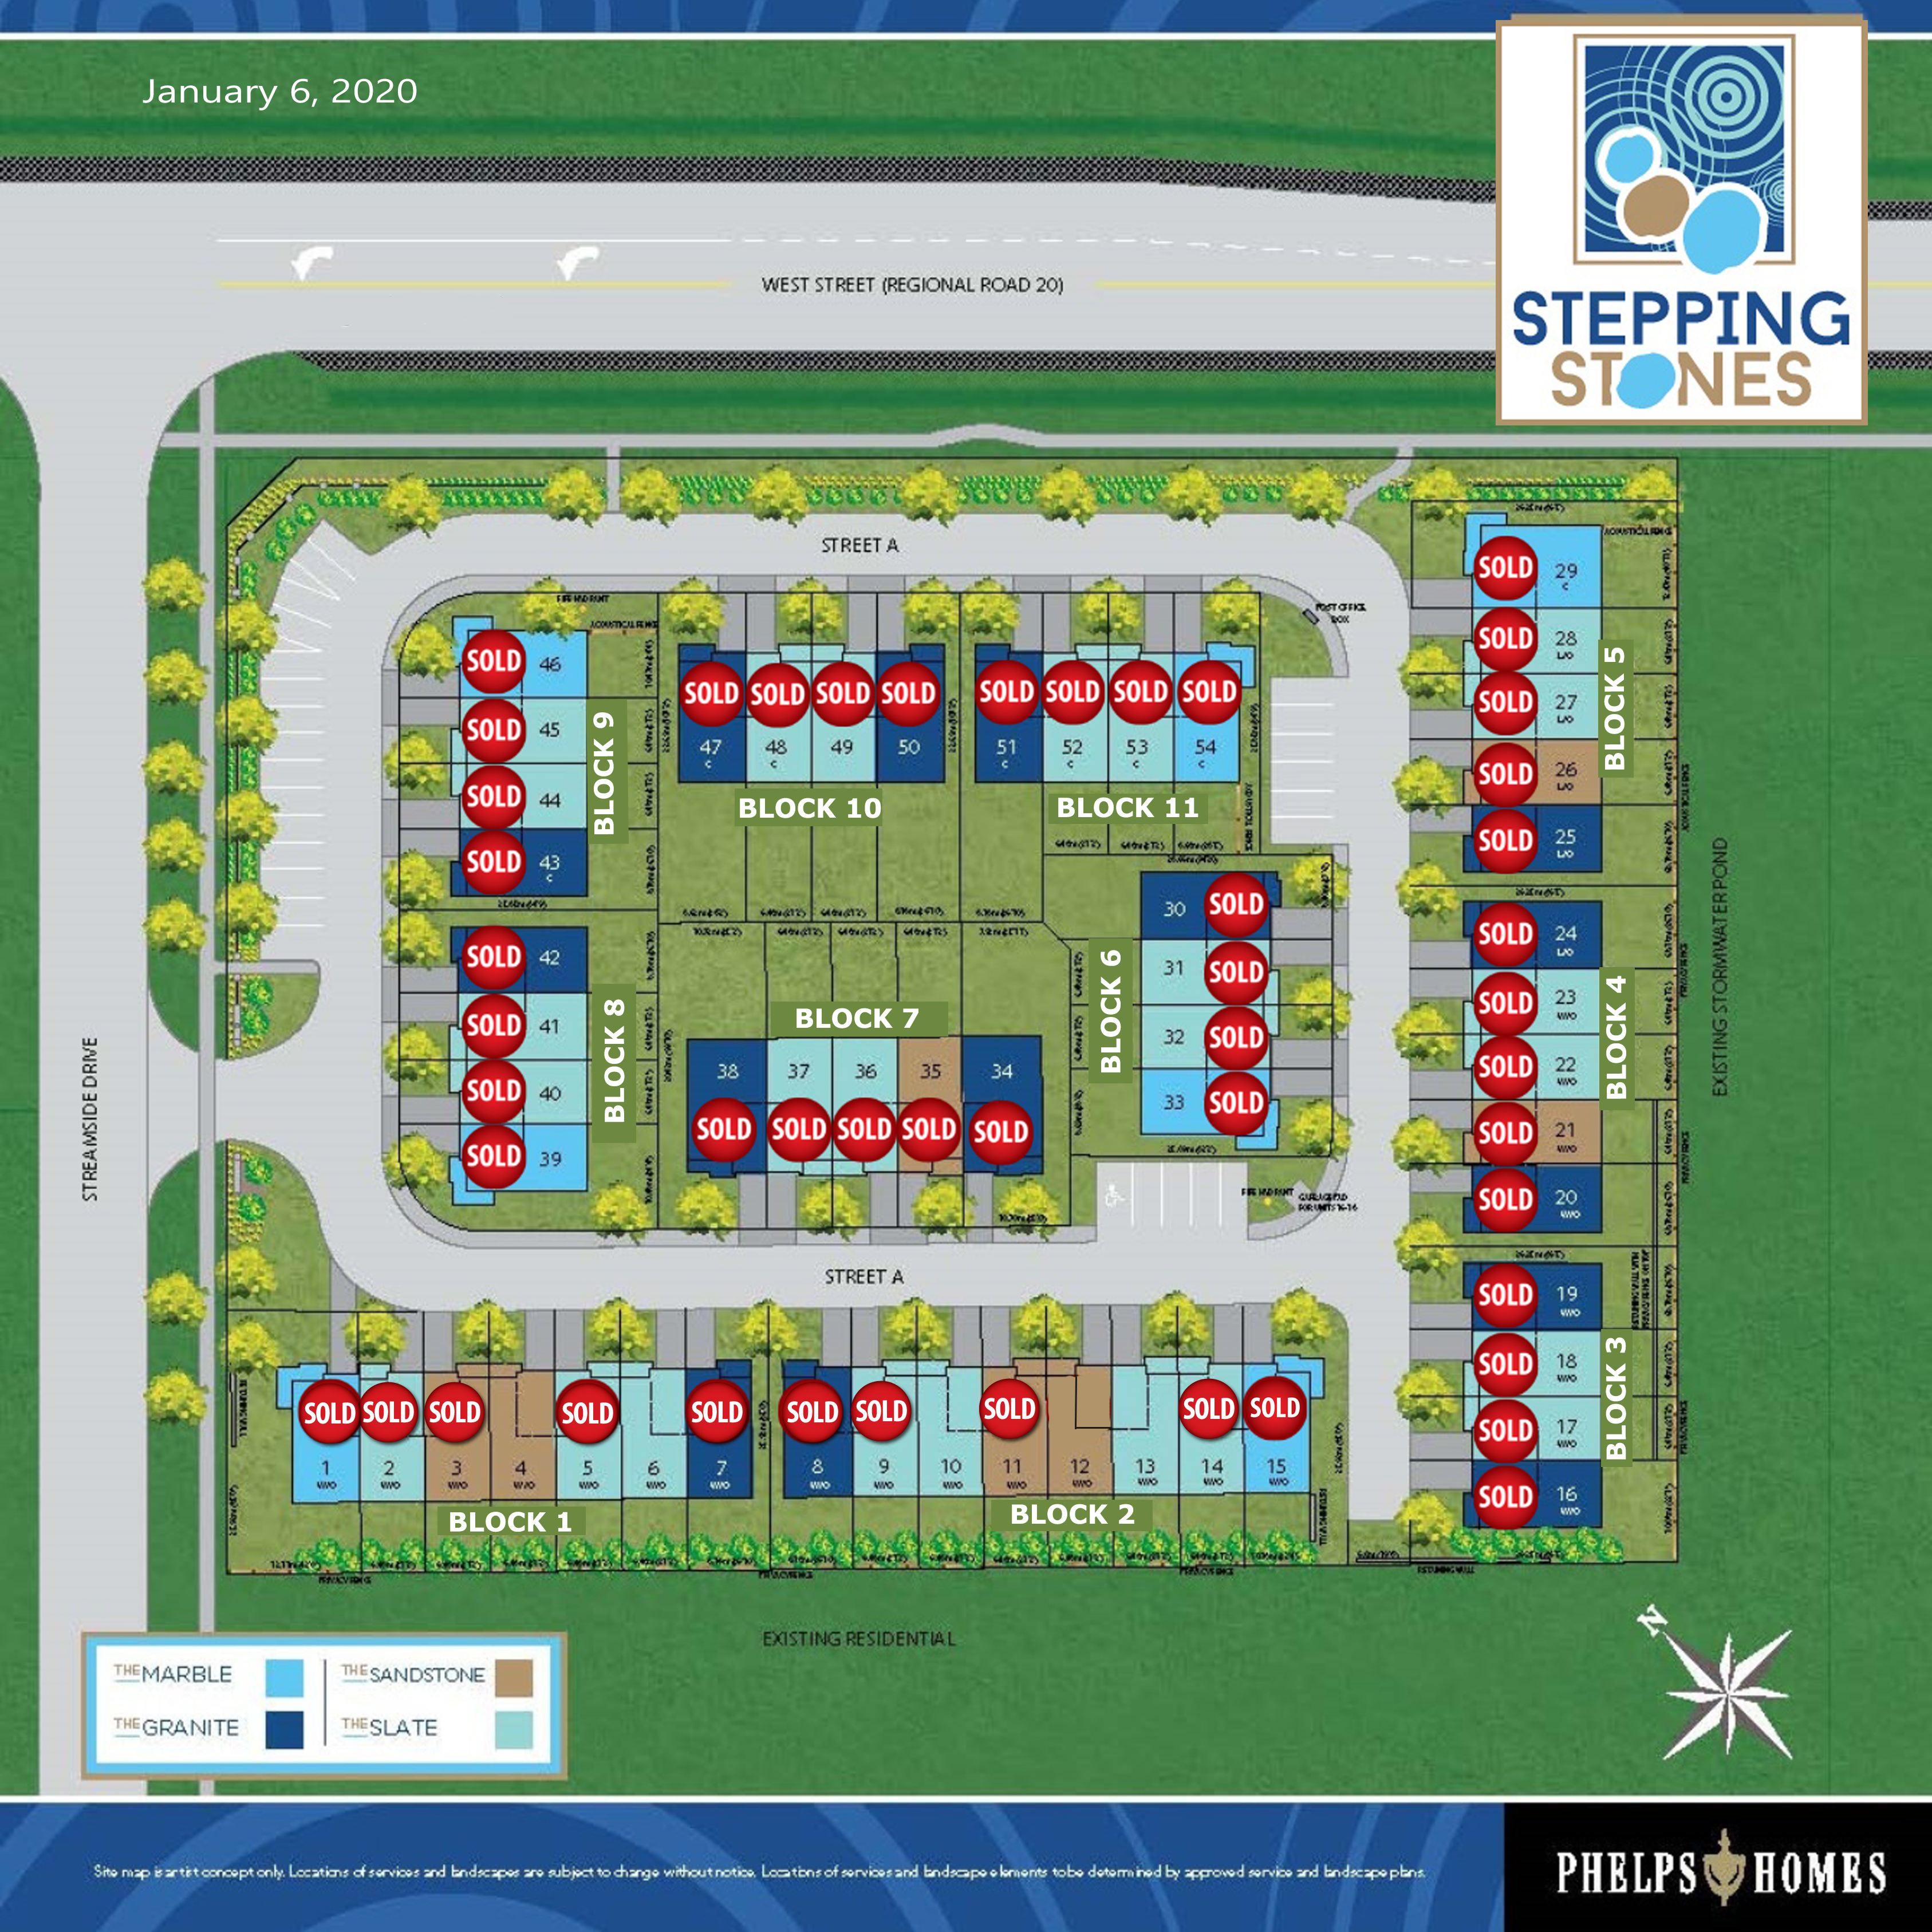 Stepping Stones Site Plan - 01.06